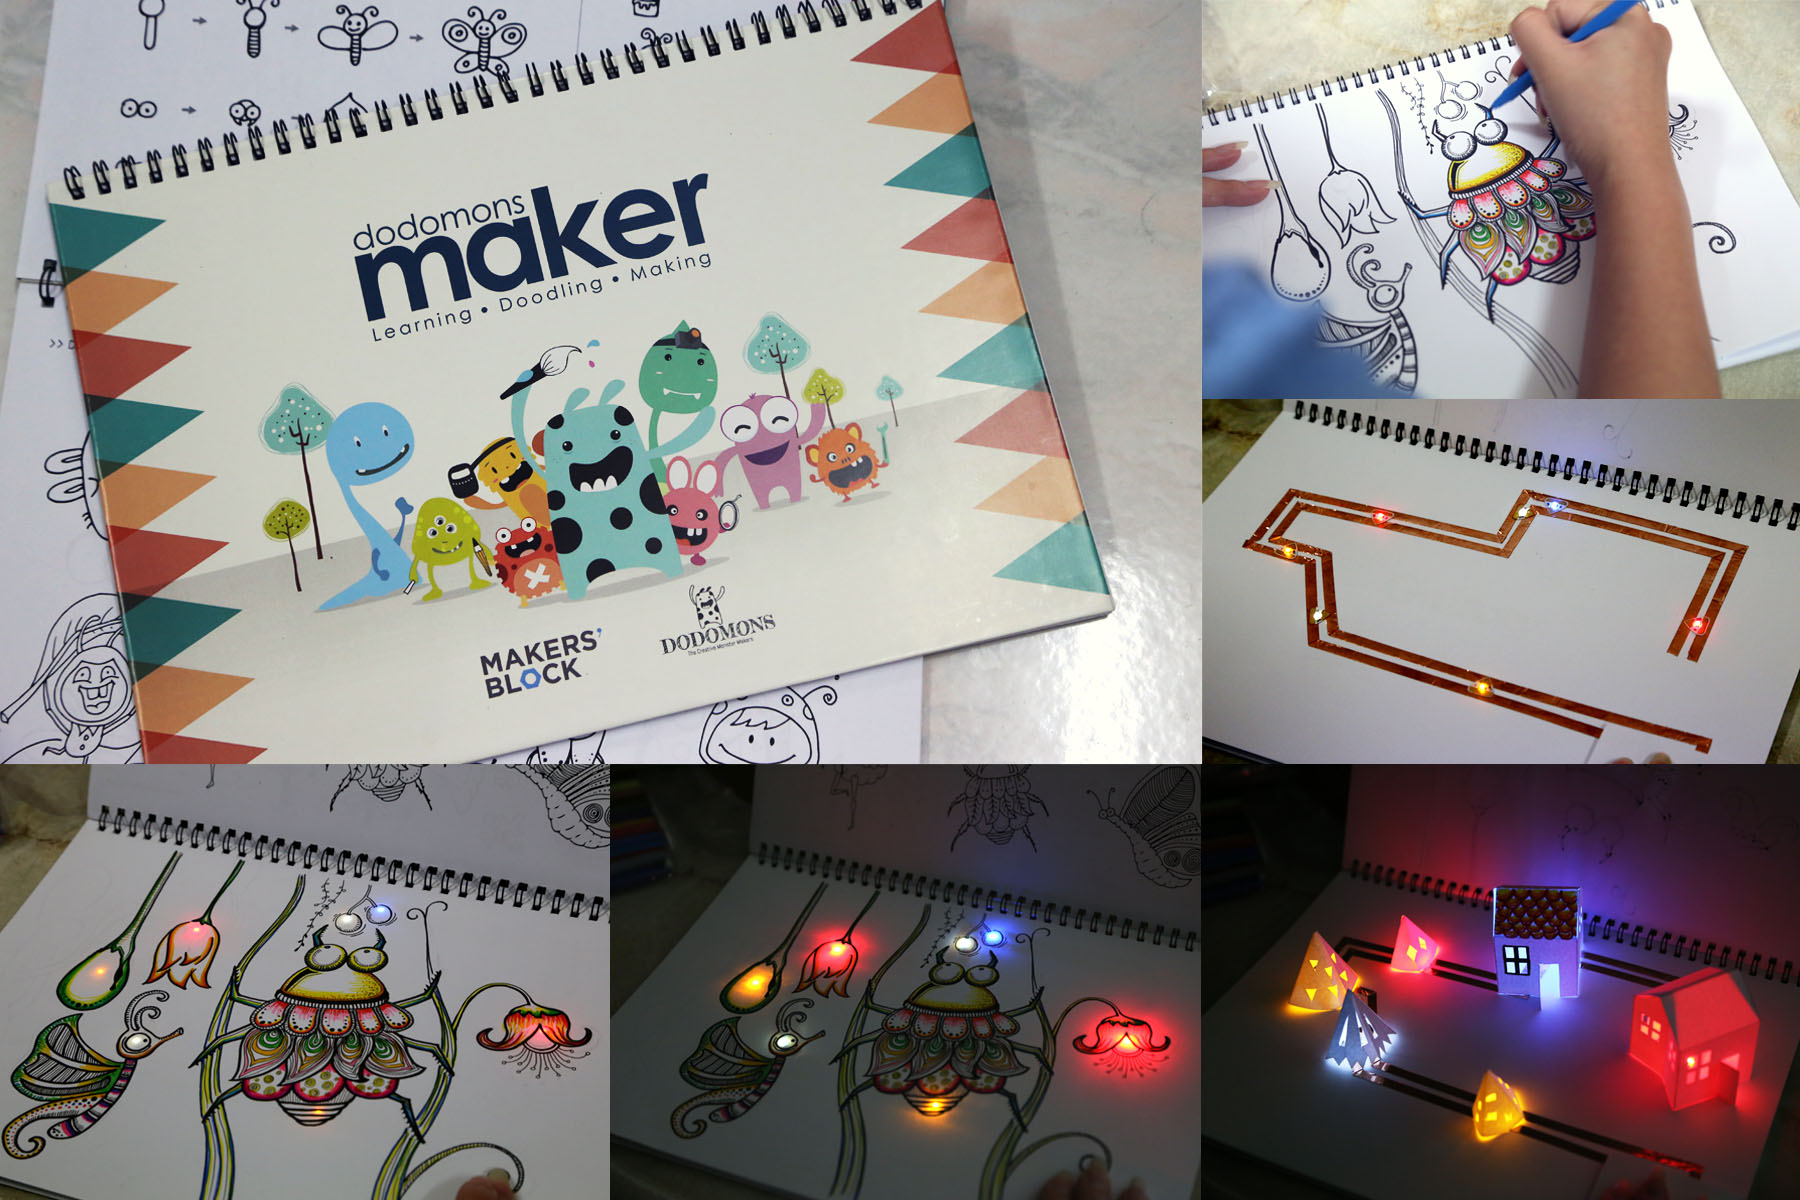 Doodle Craft With Electronics Hardwarezonecomsg Circuits Book Circuit Stickers Are Peel And Stick For Crafting Electronic You Can Use Them To Add Any Paper Fabric Plastic